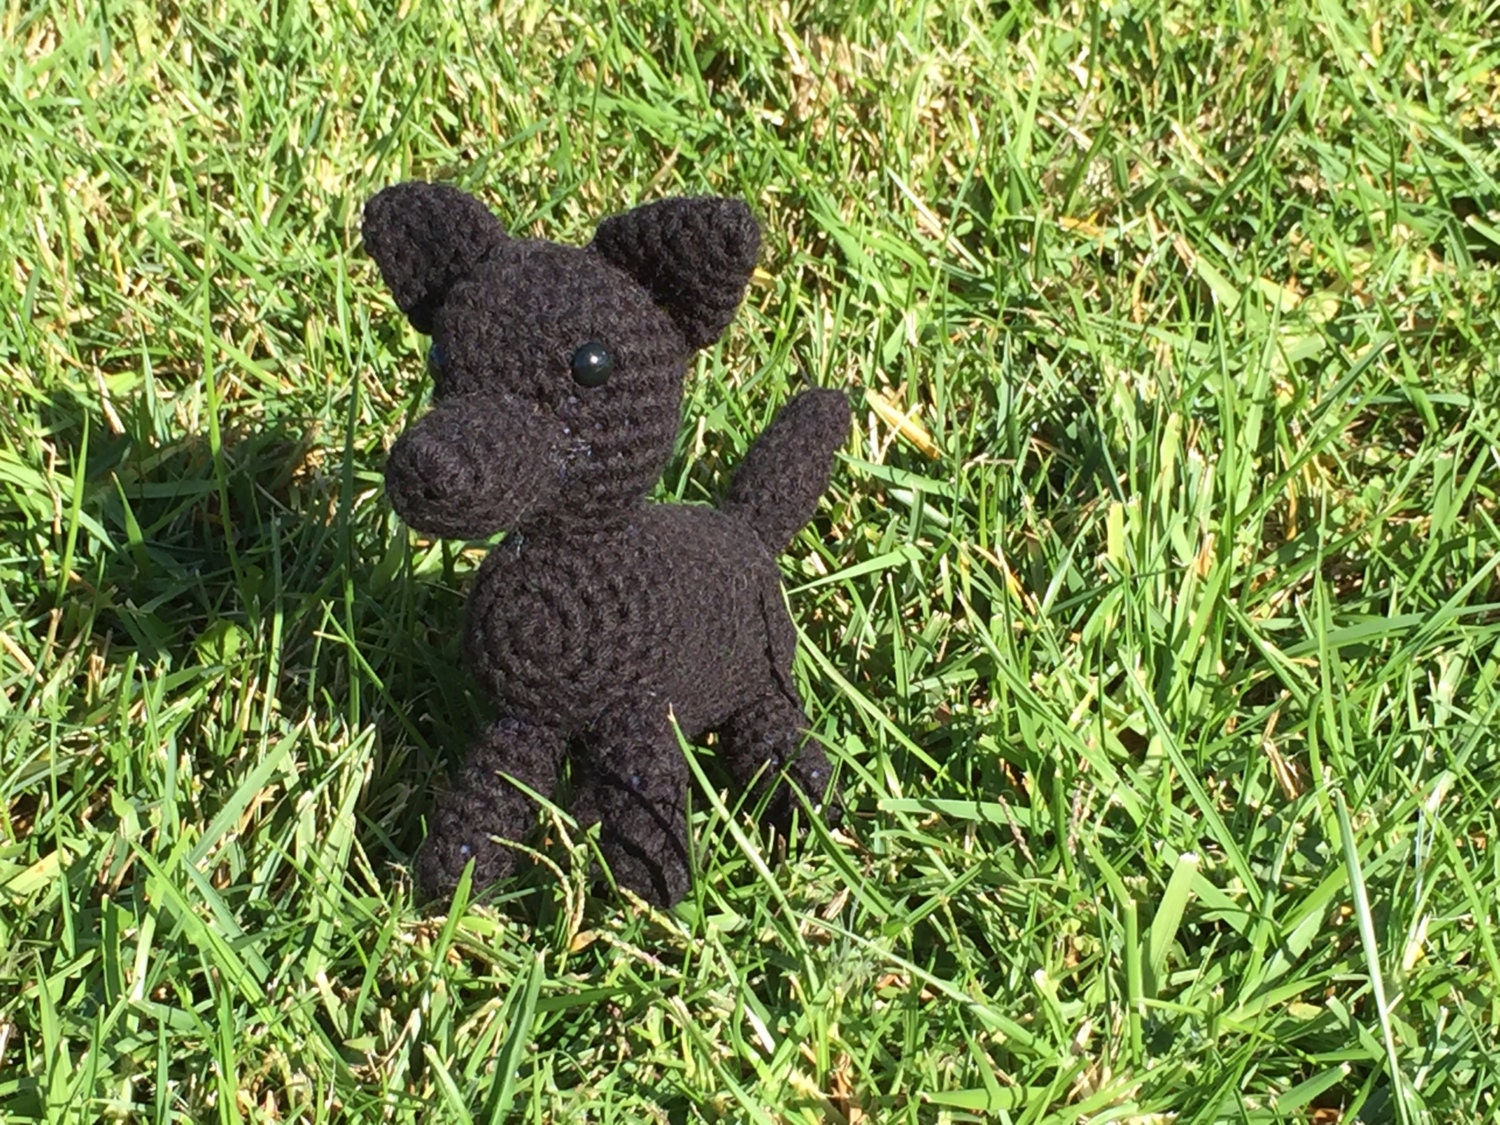 German Shepherd dog crochet pattern PDF. English USA |Crochet German Shepherd